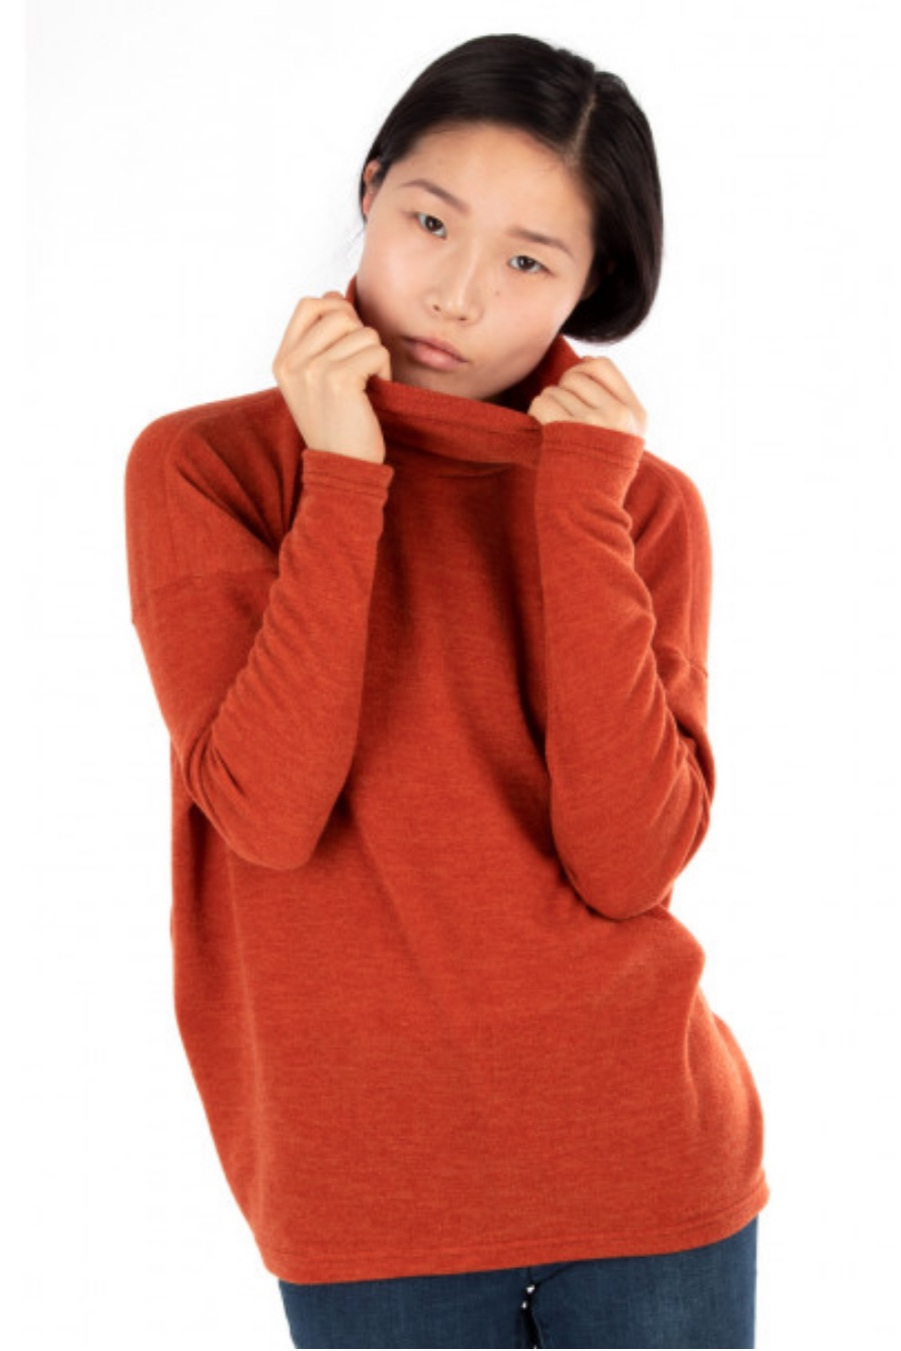 Yoko square rollneck top from Jalie